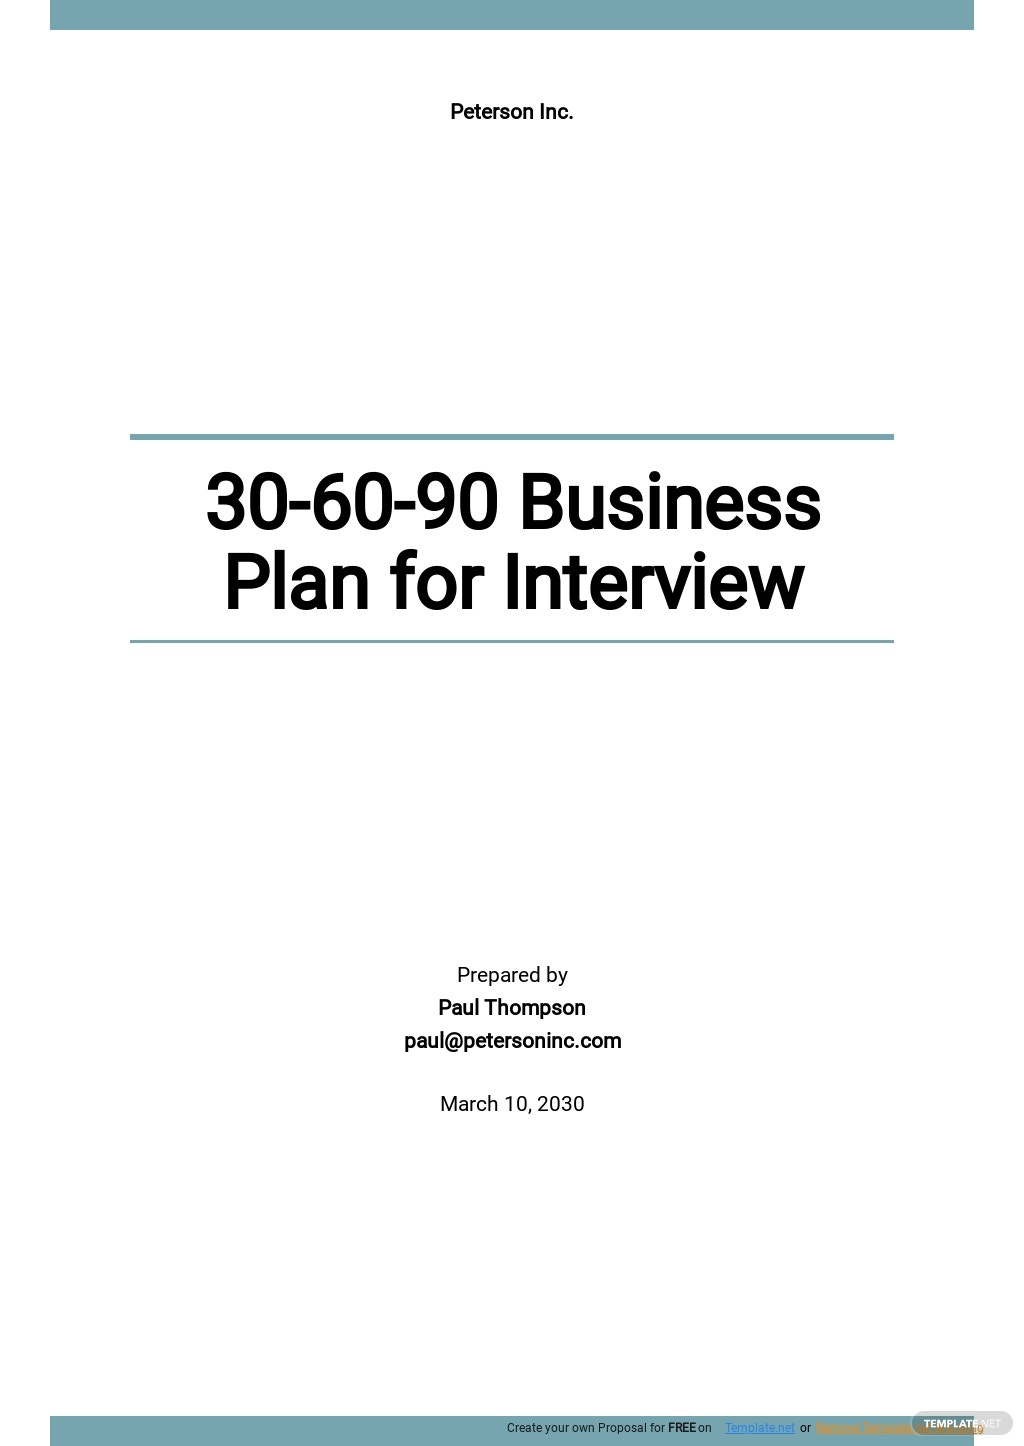 30 60 90 Business Plan For Interview.jpe